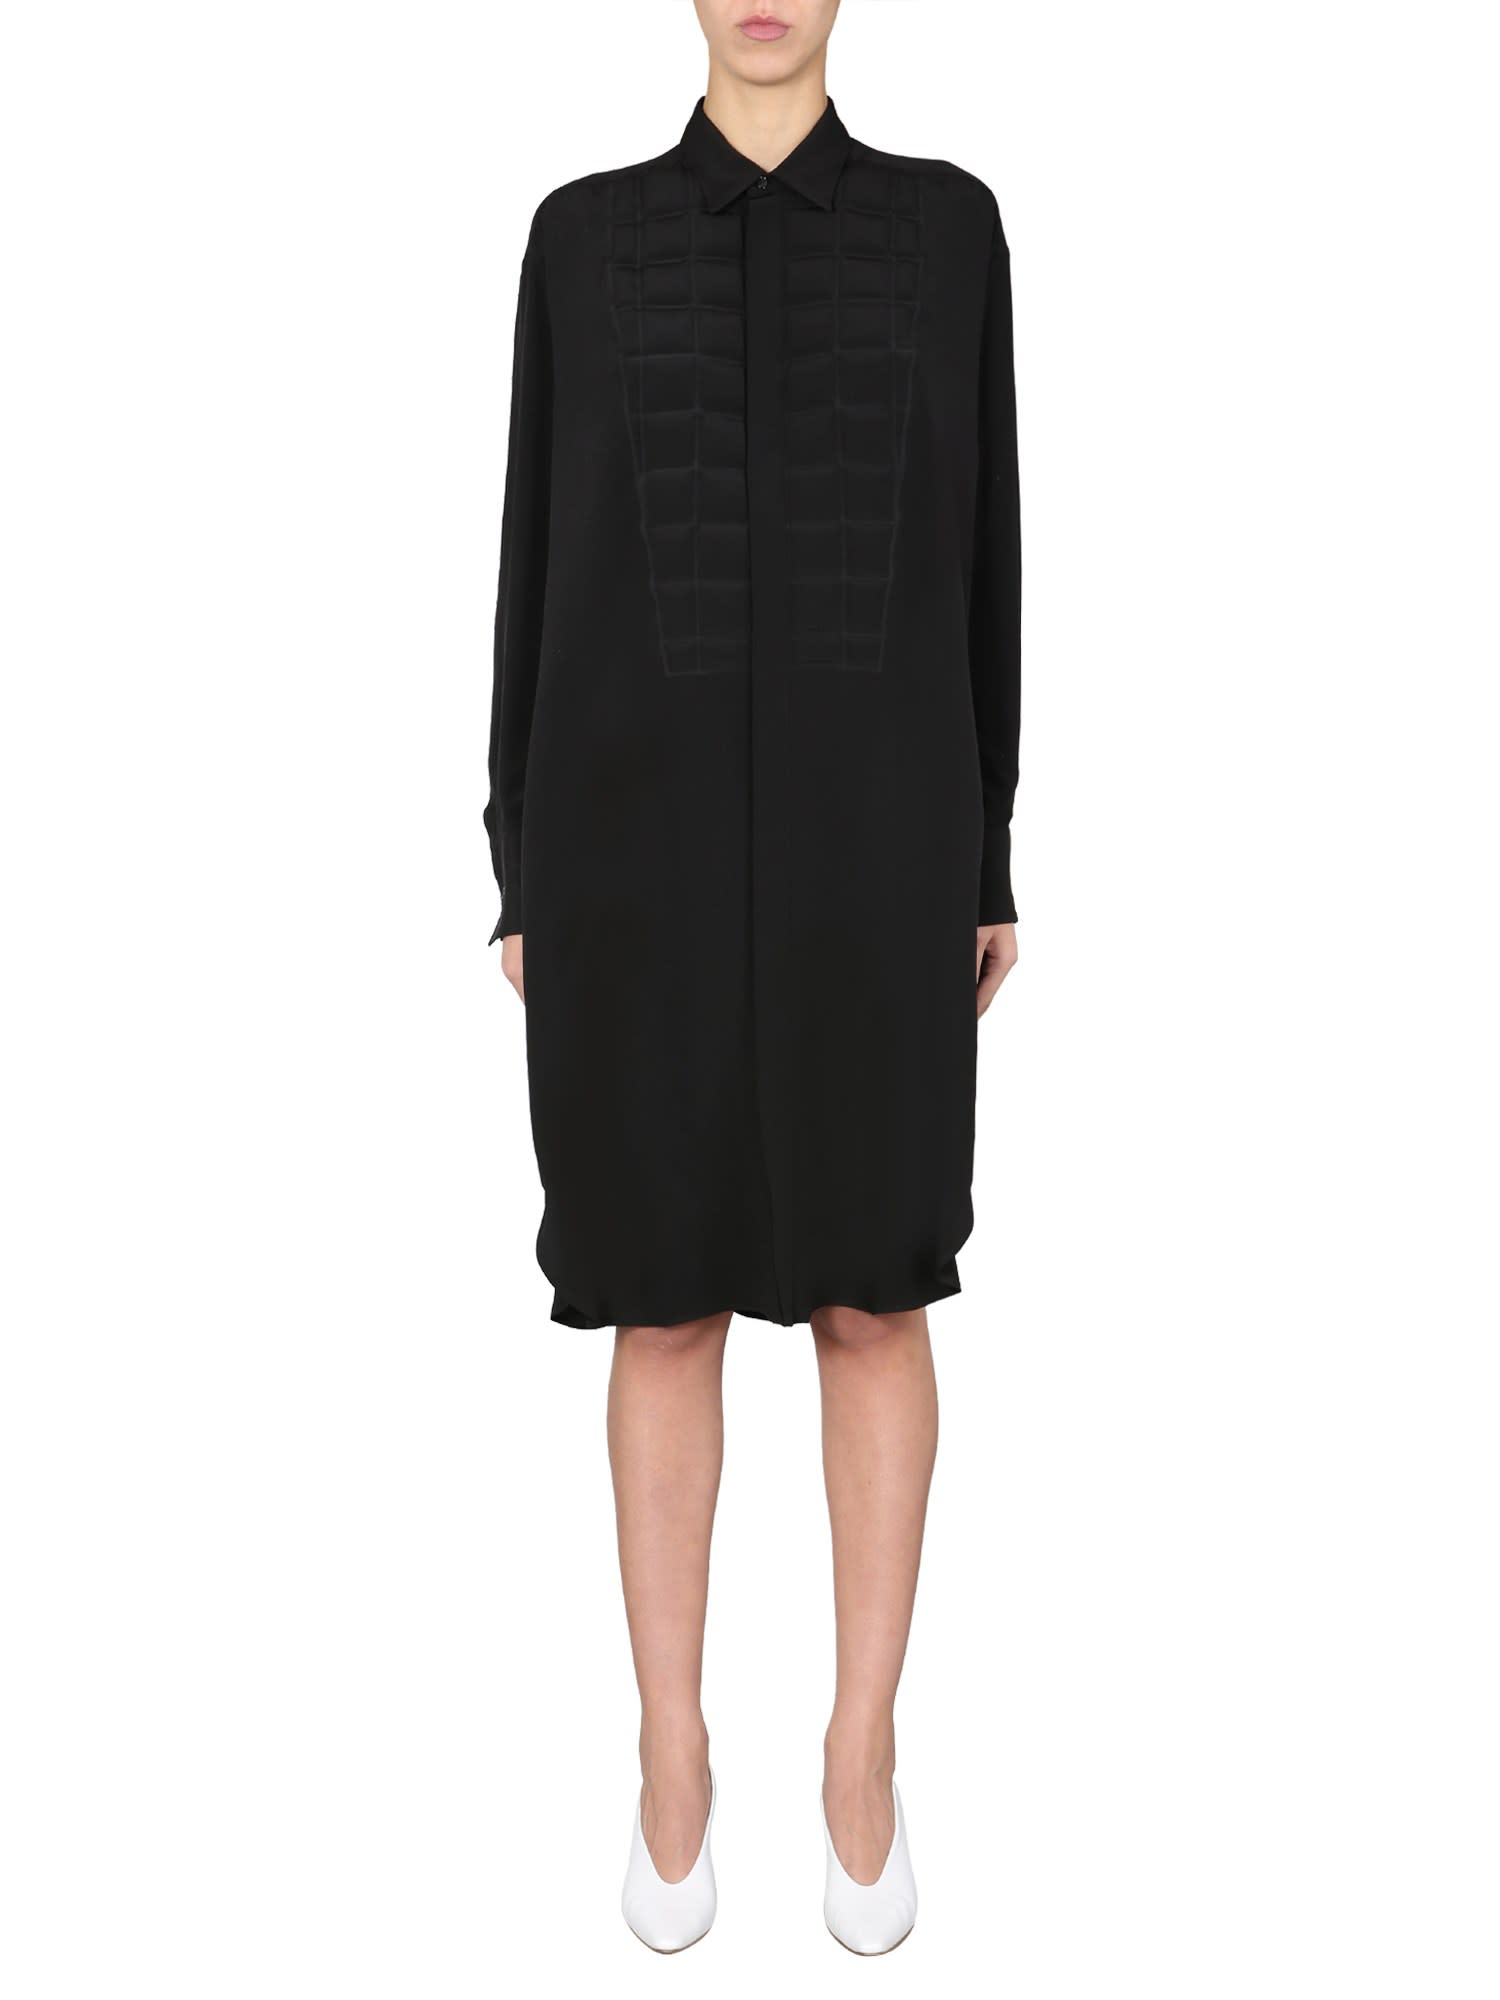 Buy Bottega Veneta Chemisier Dress online, shop Bottega Veneta with free shipping